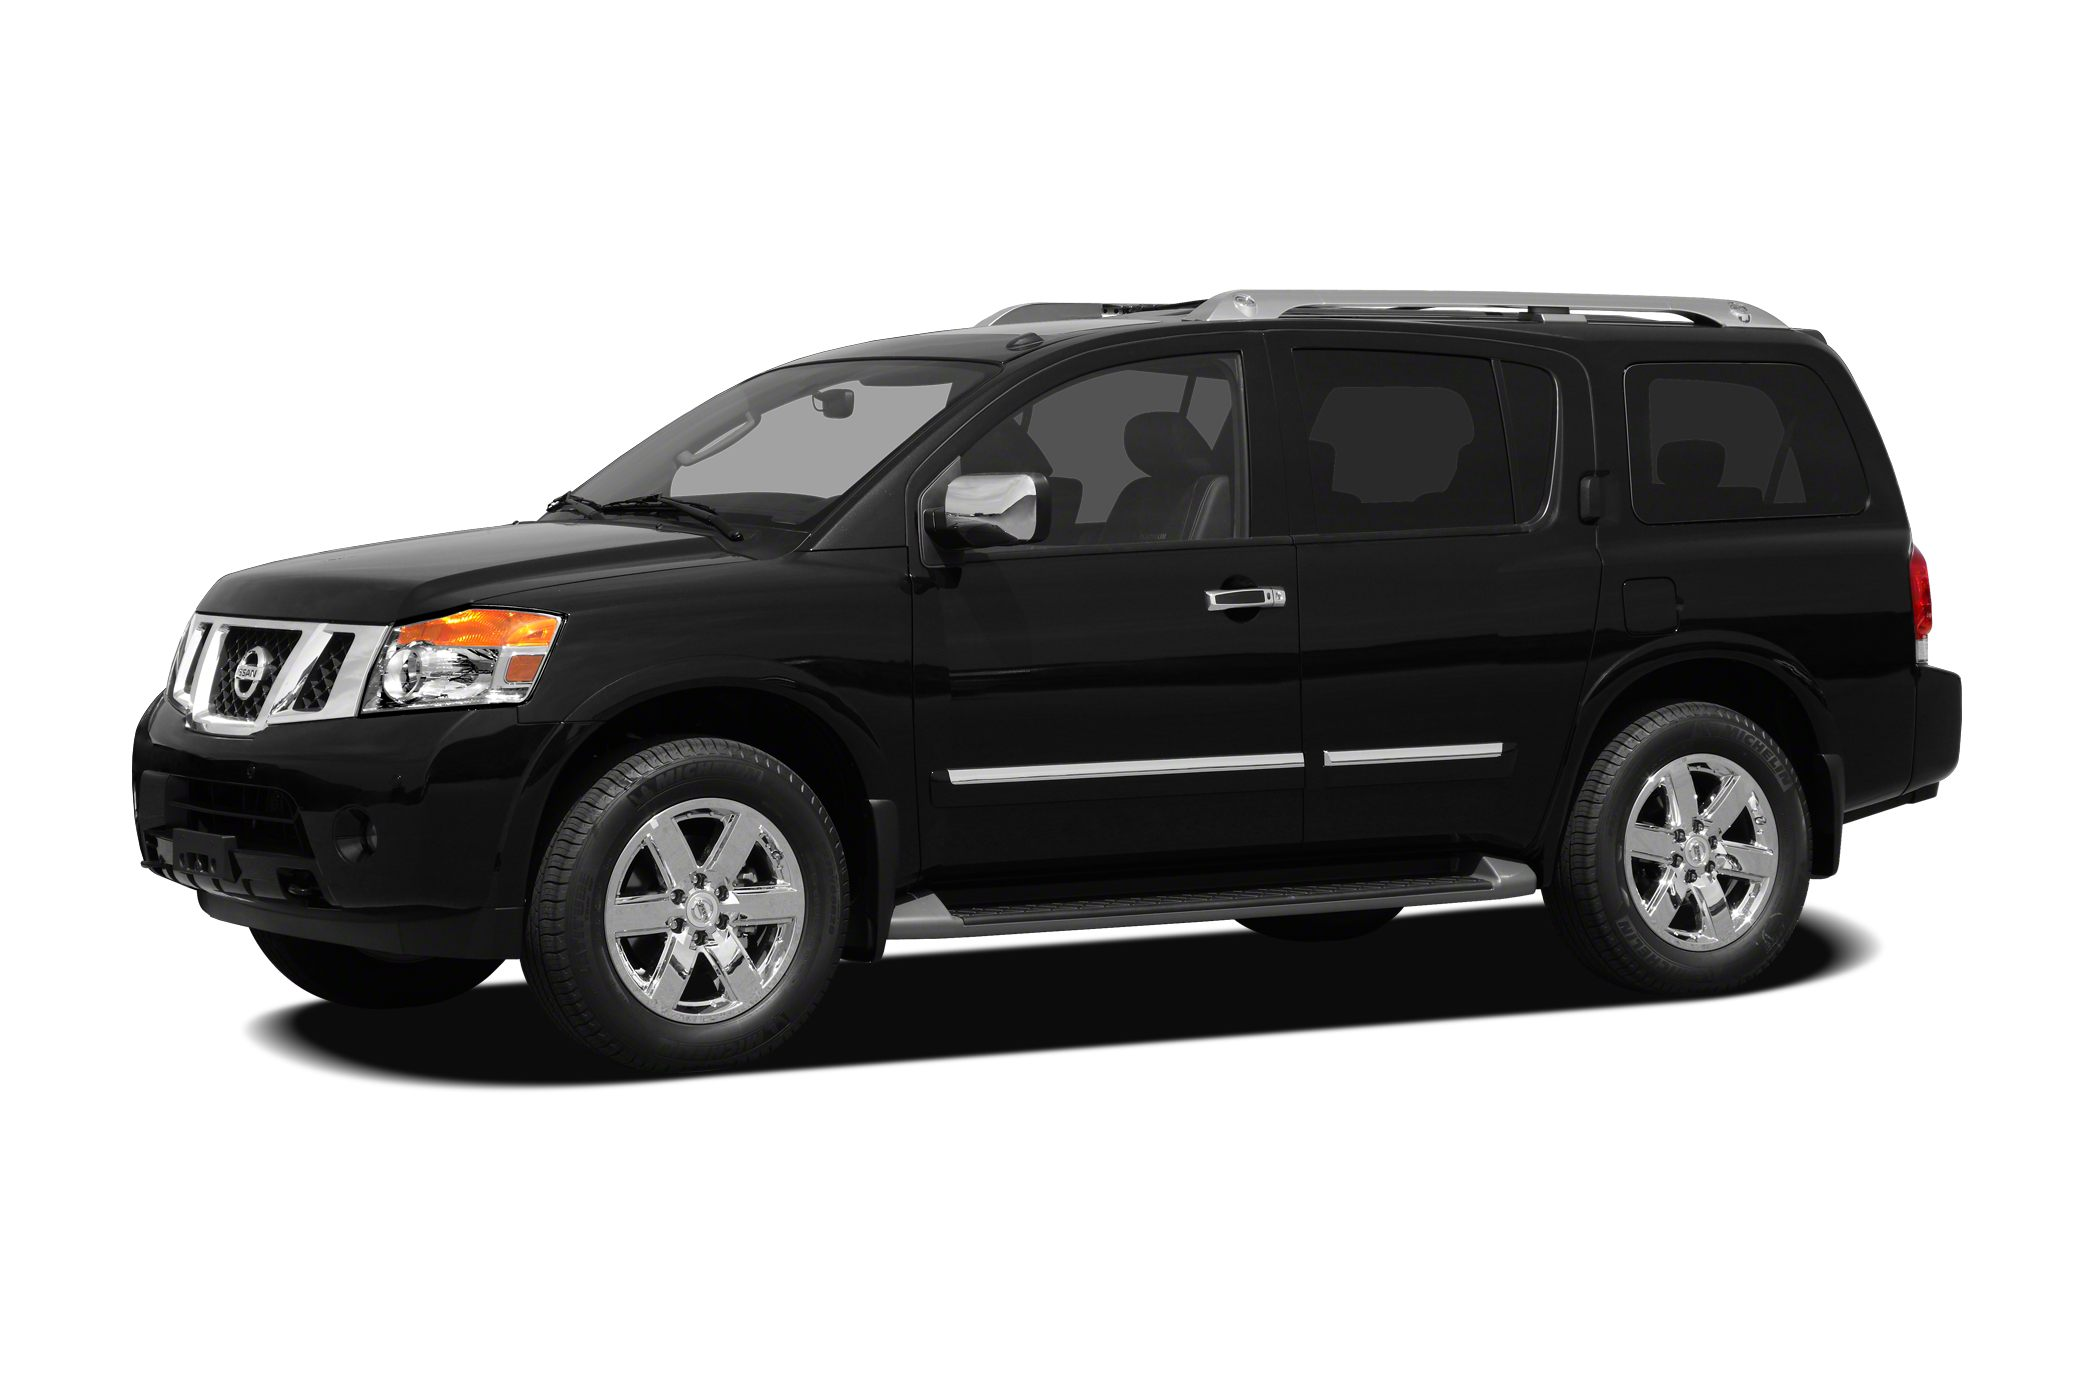 2010 Nissan Armada SE SUV for sale in Amarillo for $22,900 with 89,545 miles.